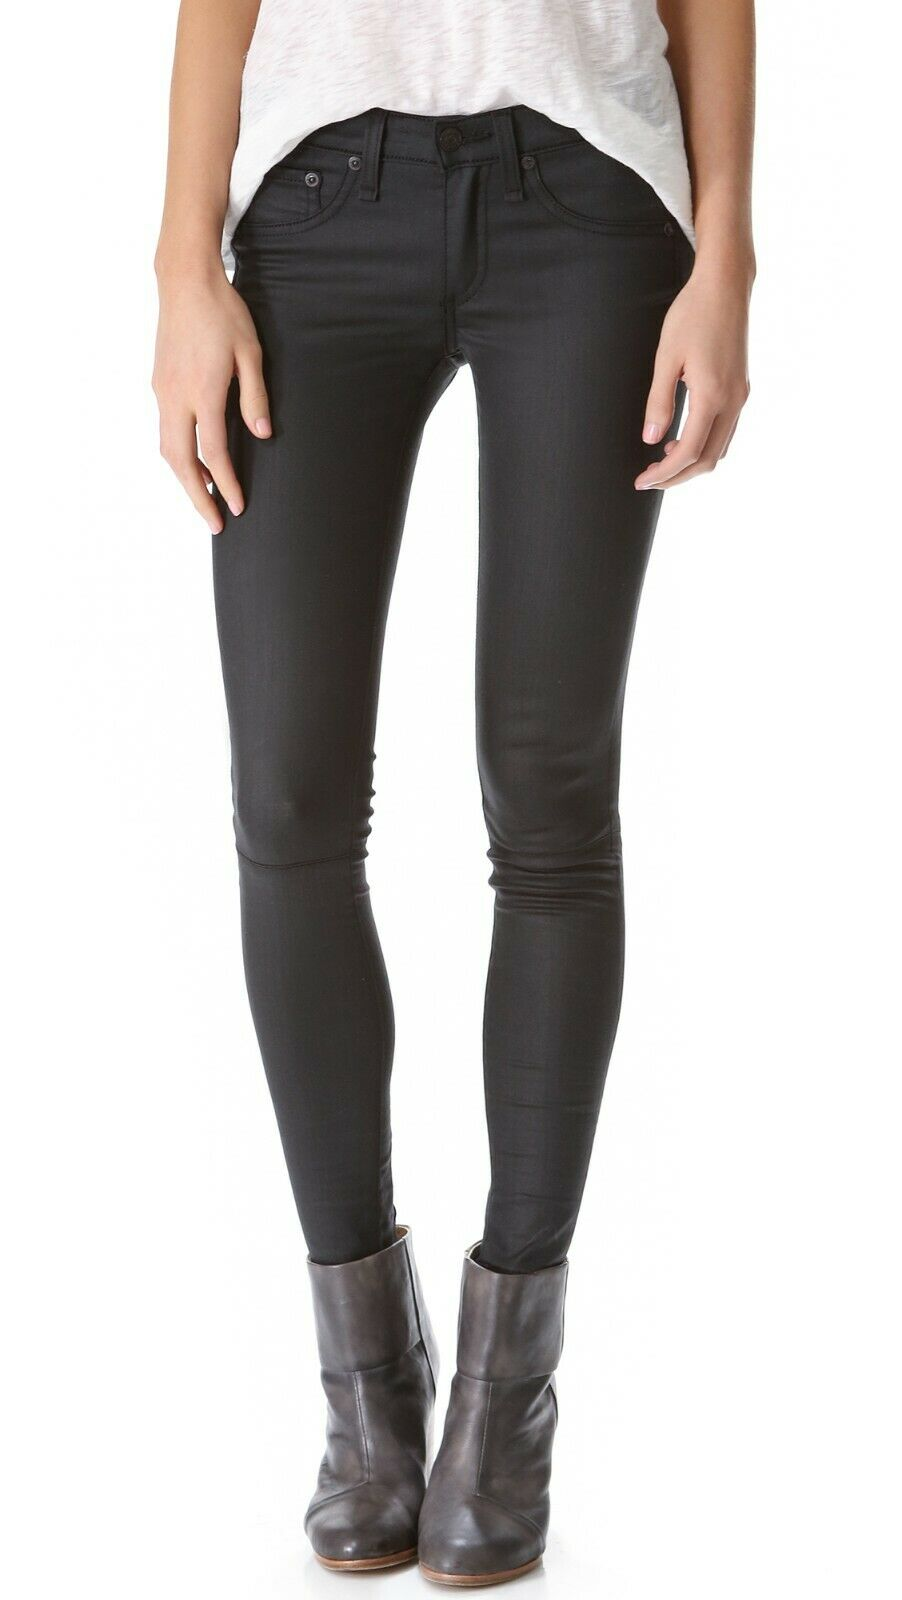 Rag & Bone/JEAN Womens Size 28 Black Denim Devi Lace Up Coated Skinny Jeans $250